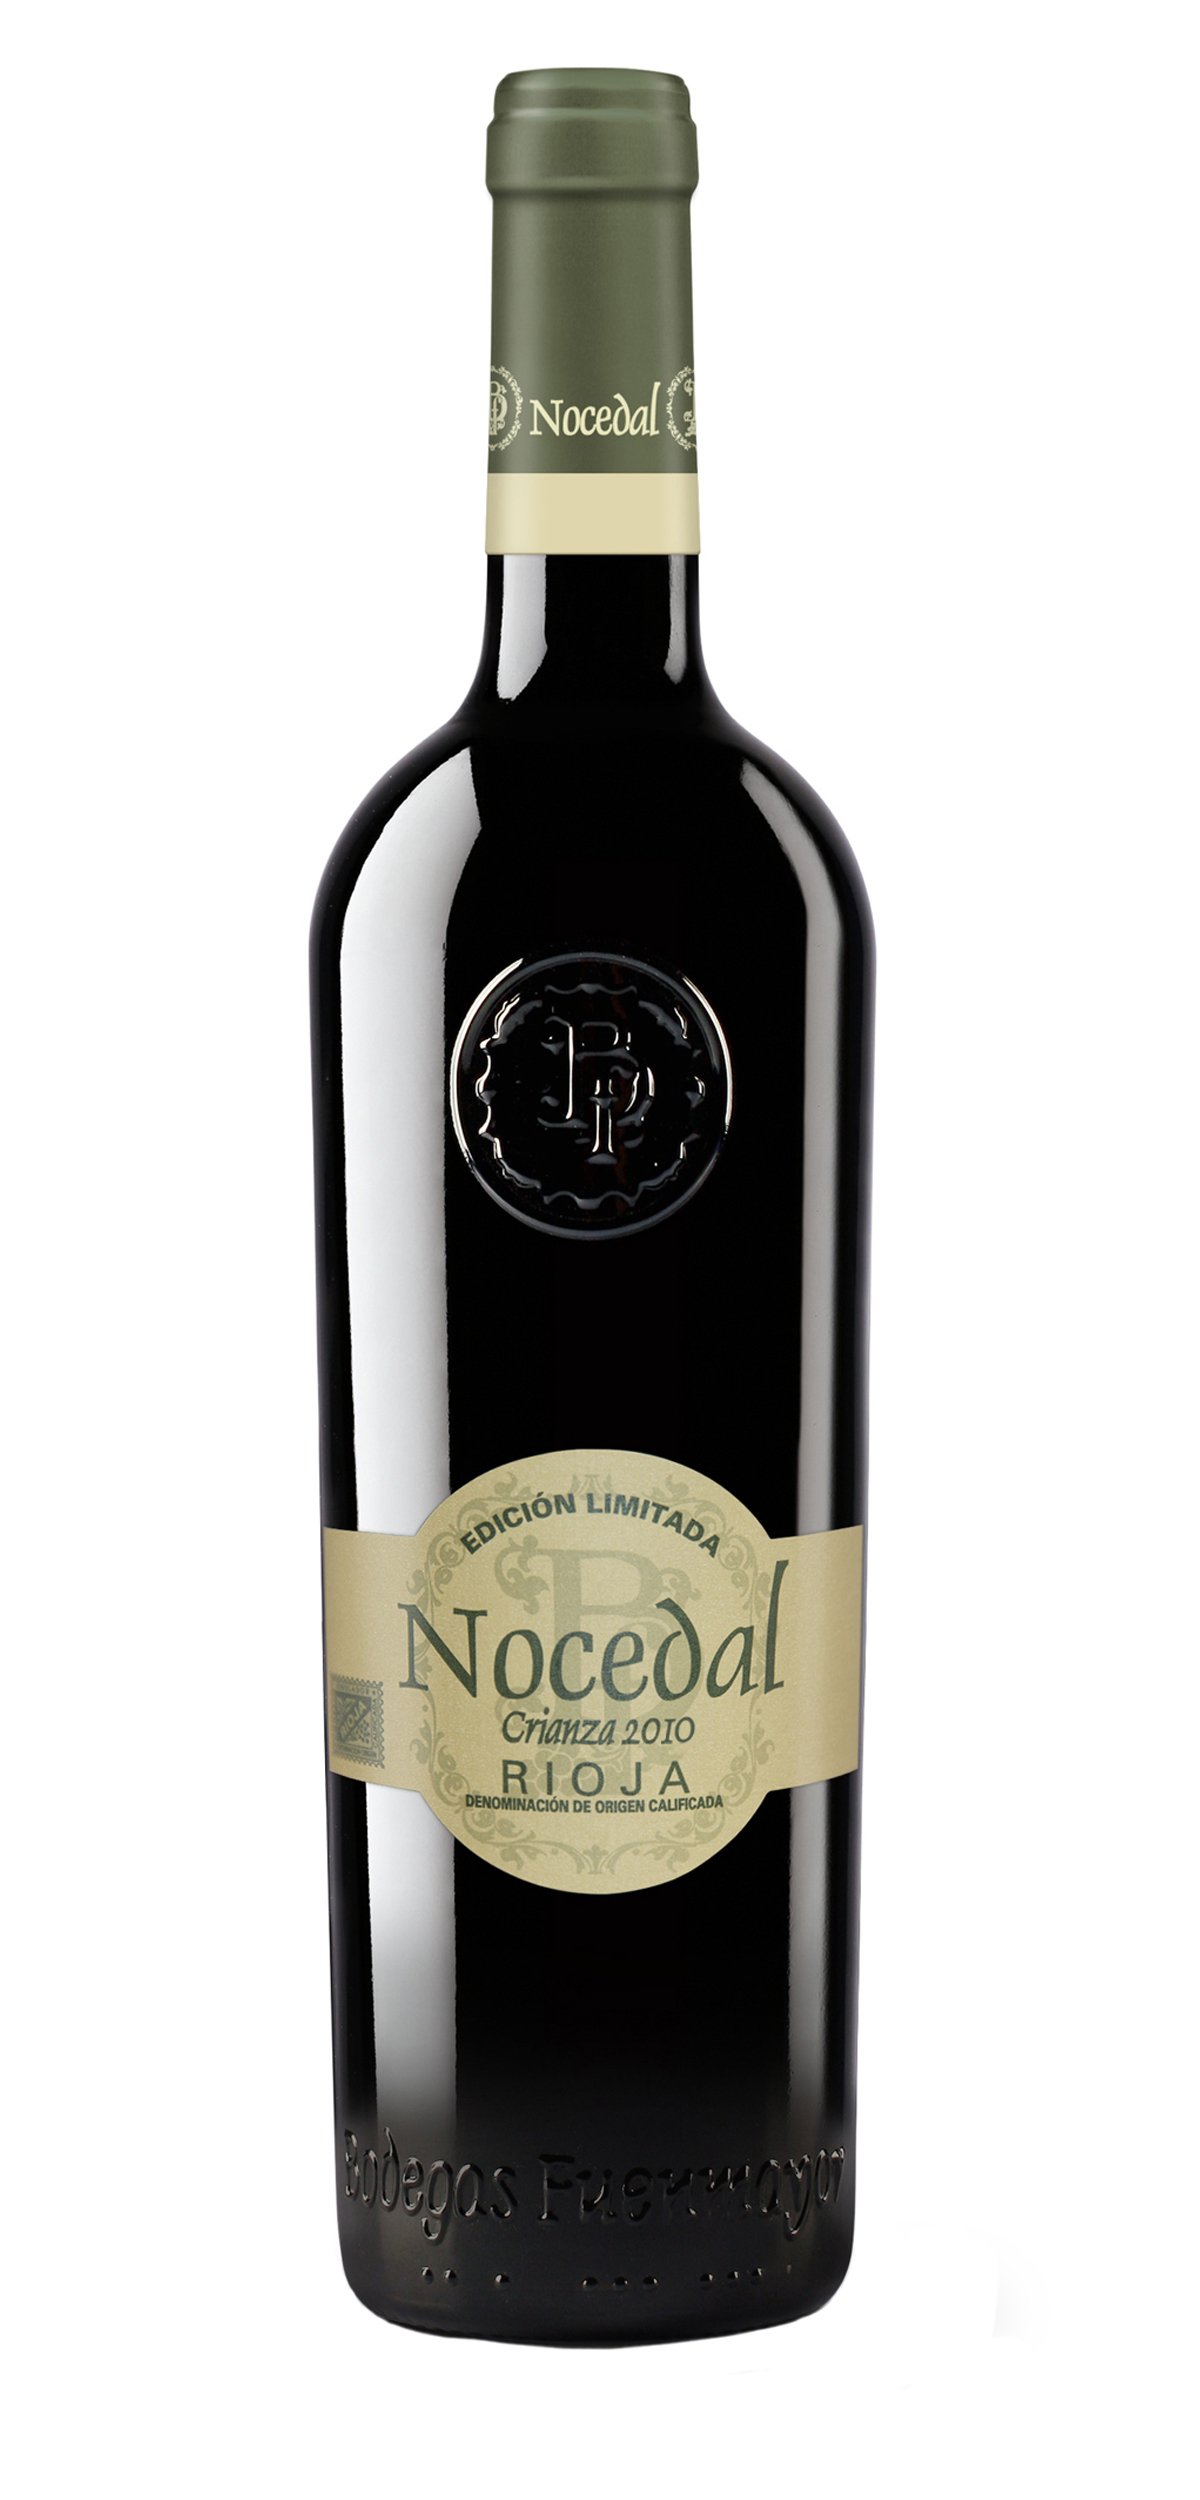 Nocedal Crianza wine bottle design